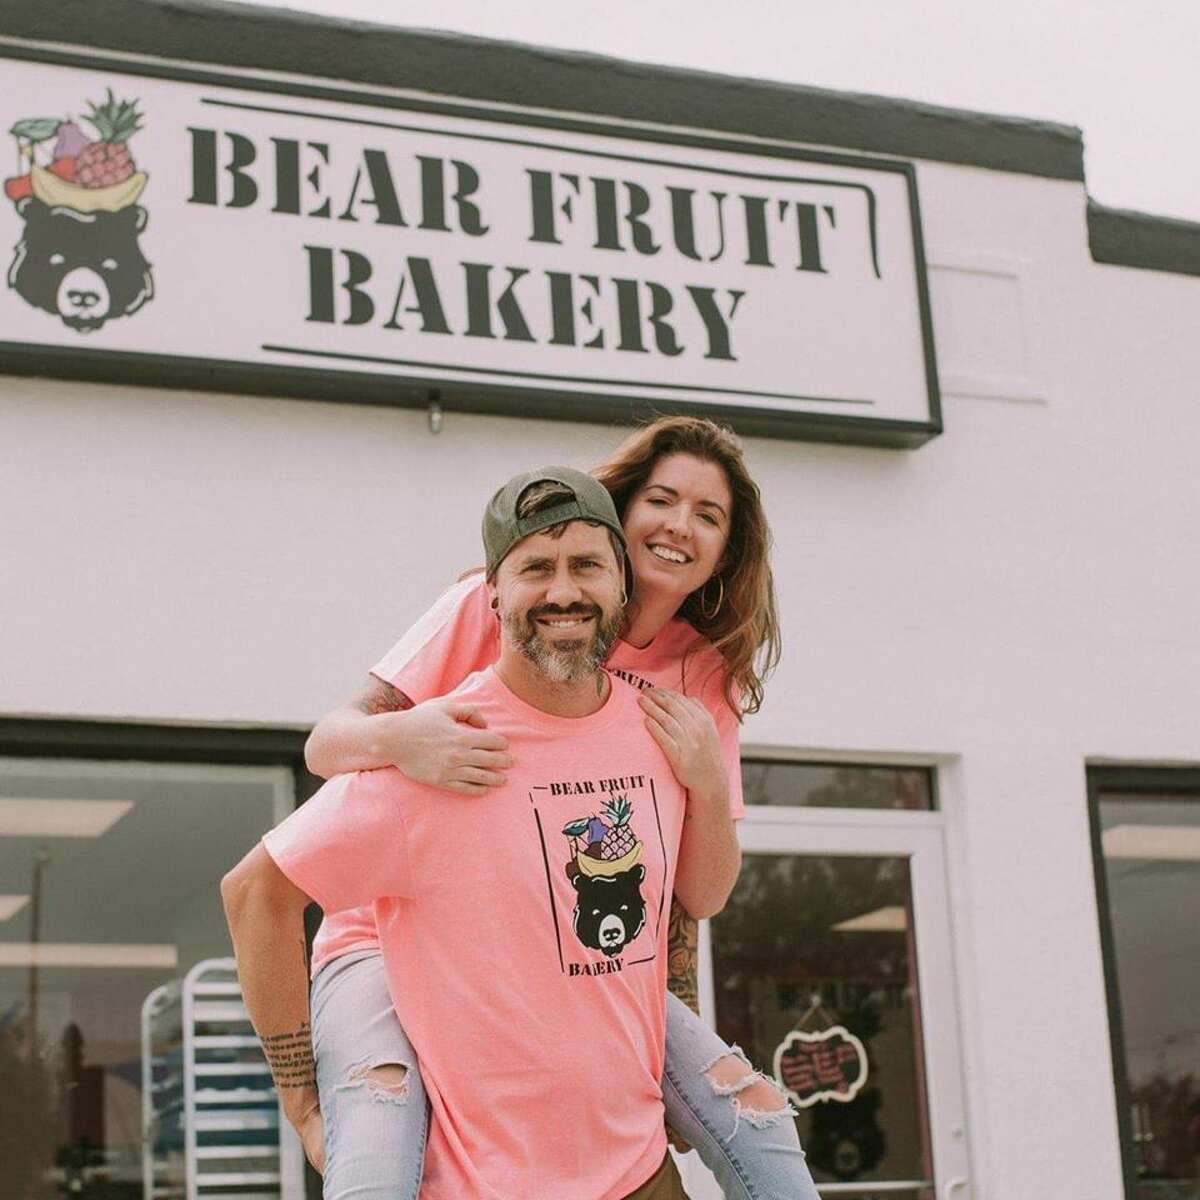 After Bear Fruit Bakery's success, Stafford said that bakery ended up giving away $30,000 to other struggling businesses in the last few weeks. After such a significant commitment, the couple has decided to stem the cash donations, but give back in other ways, through different platforms to help their neighbors. After Bear Fruit Bakery's success, Stafford said that bakery ended up giving away $30,000 to other struggling businesses in the last few weeks. After such a significant commitment, the couple has decided to stem the cash donations, but give back in other ways, through different platforms to help their neighbors.